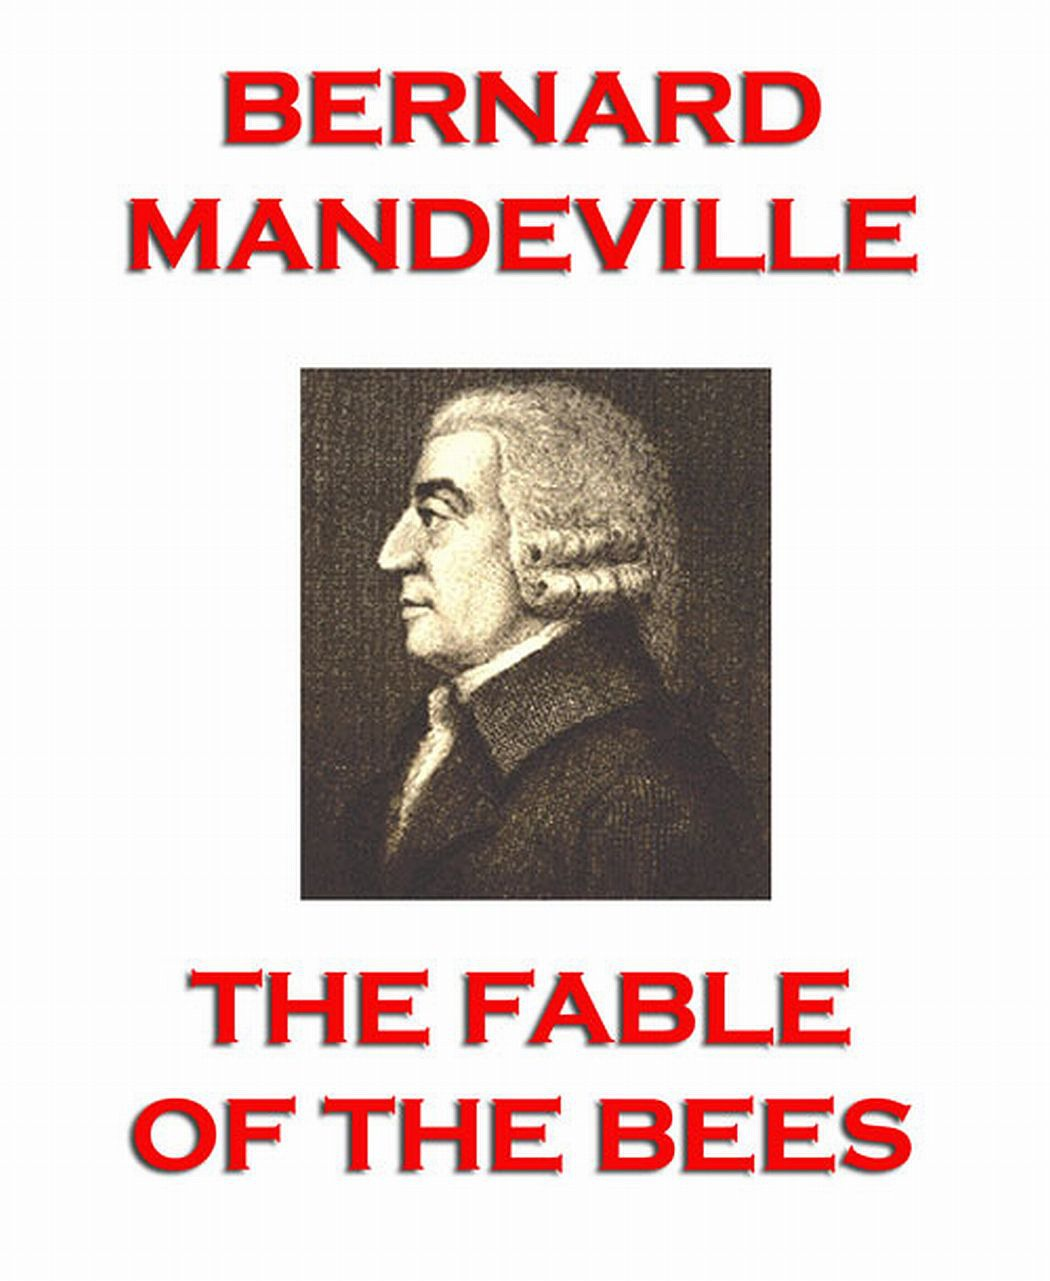 Bernard Mandeville The Fable of the Bees hannah bernard the dating resolution